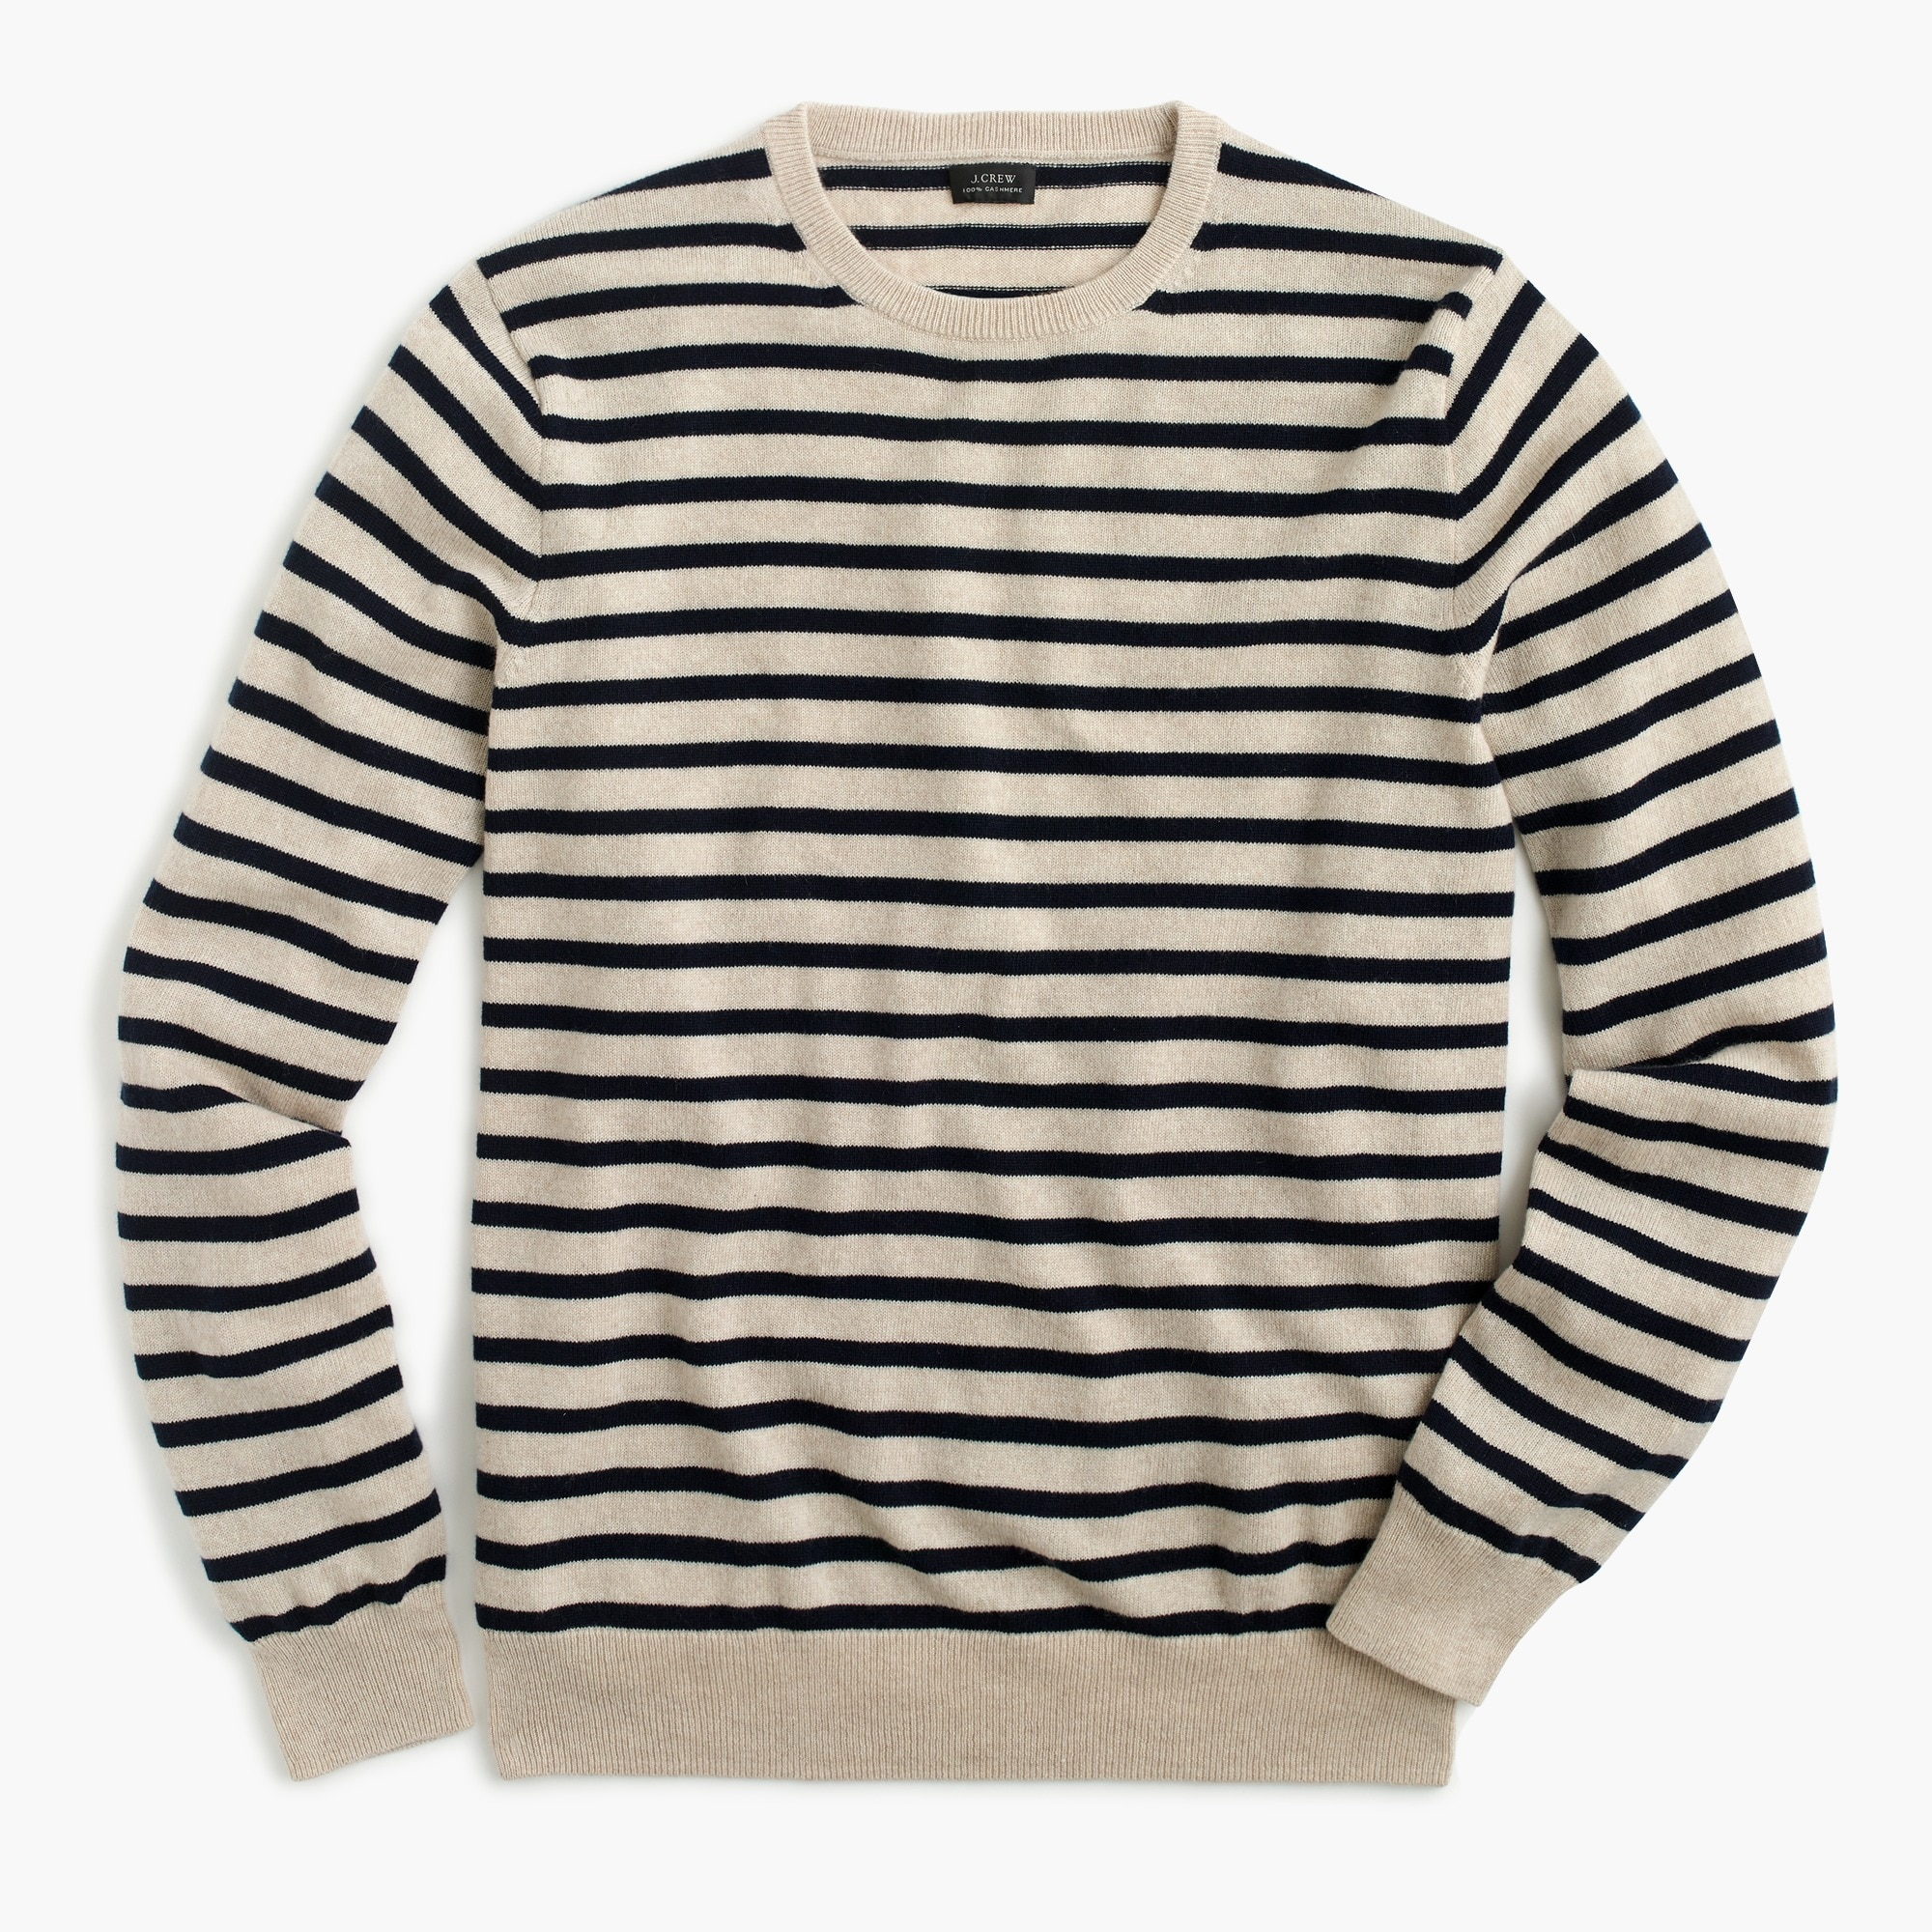 Image 2 for Everyday cashmere crewneck sweater in stripe